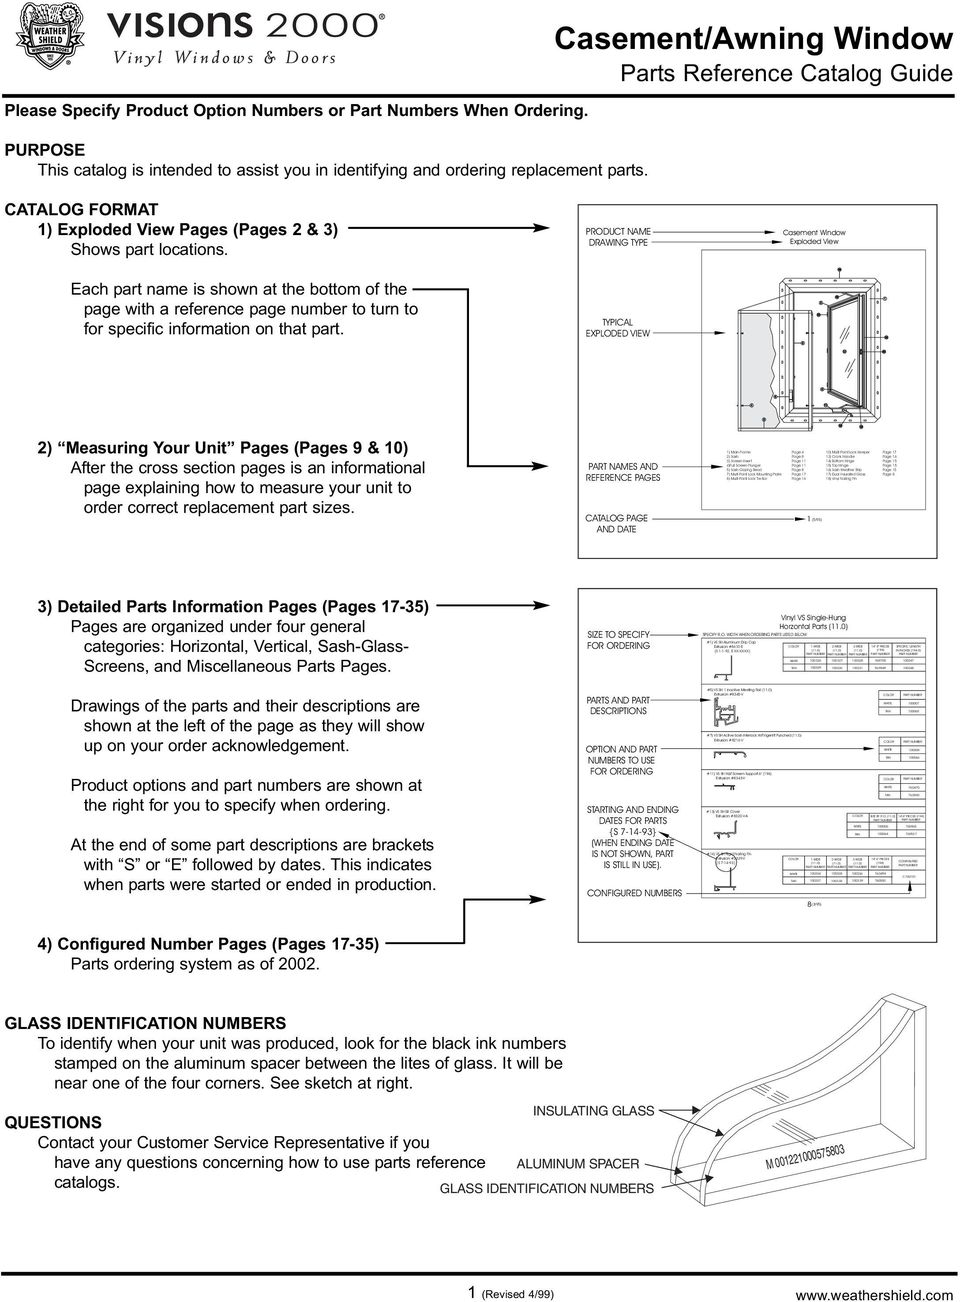 Casement/Awning Window Parts Reference Catalog Guide CATALOG FORMAT 1) Exploded View Pages (Pages 2 & 3) Shows part locations.